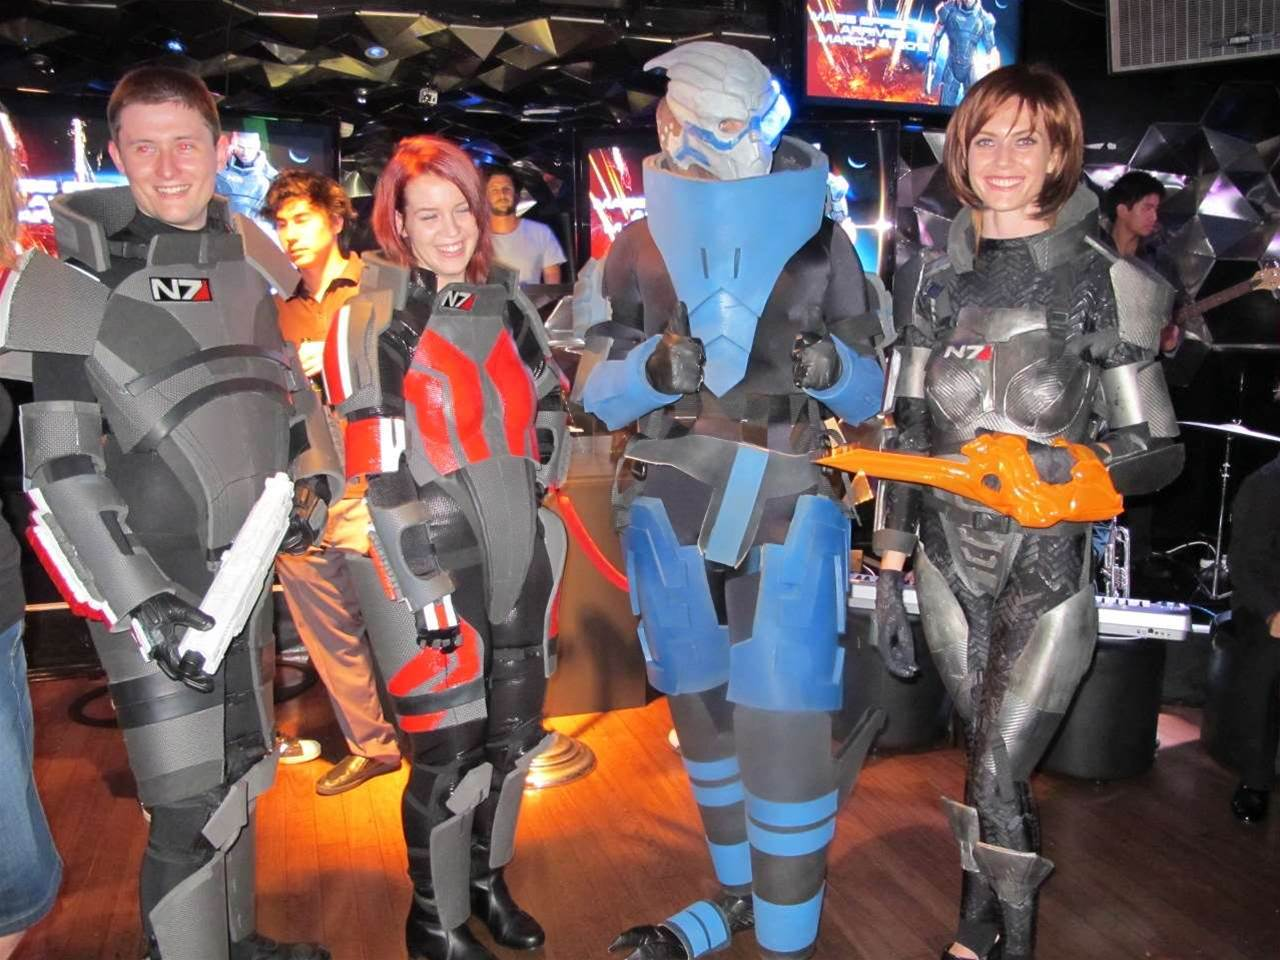 <h2>In Pictures: Mass Effect 3 Launch Party</h2>The final chapter in the Mass Effect RPG trilogy will be hitting PC, PlayStation 3 and Xbox 360 in less than a fortnight. We attended the Australian launch event to get some hands-on time with the game. Check out the rest of the gallery.